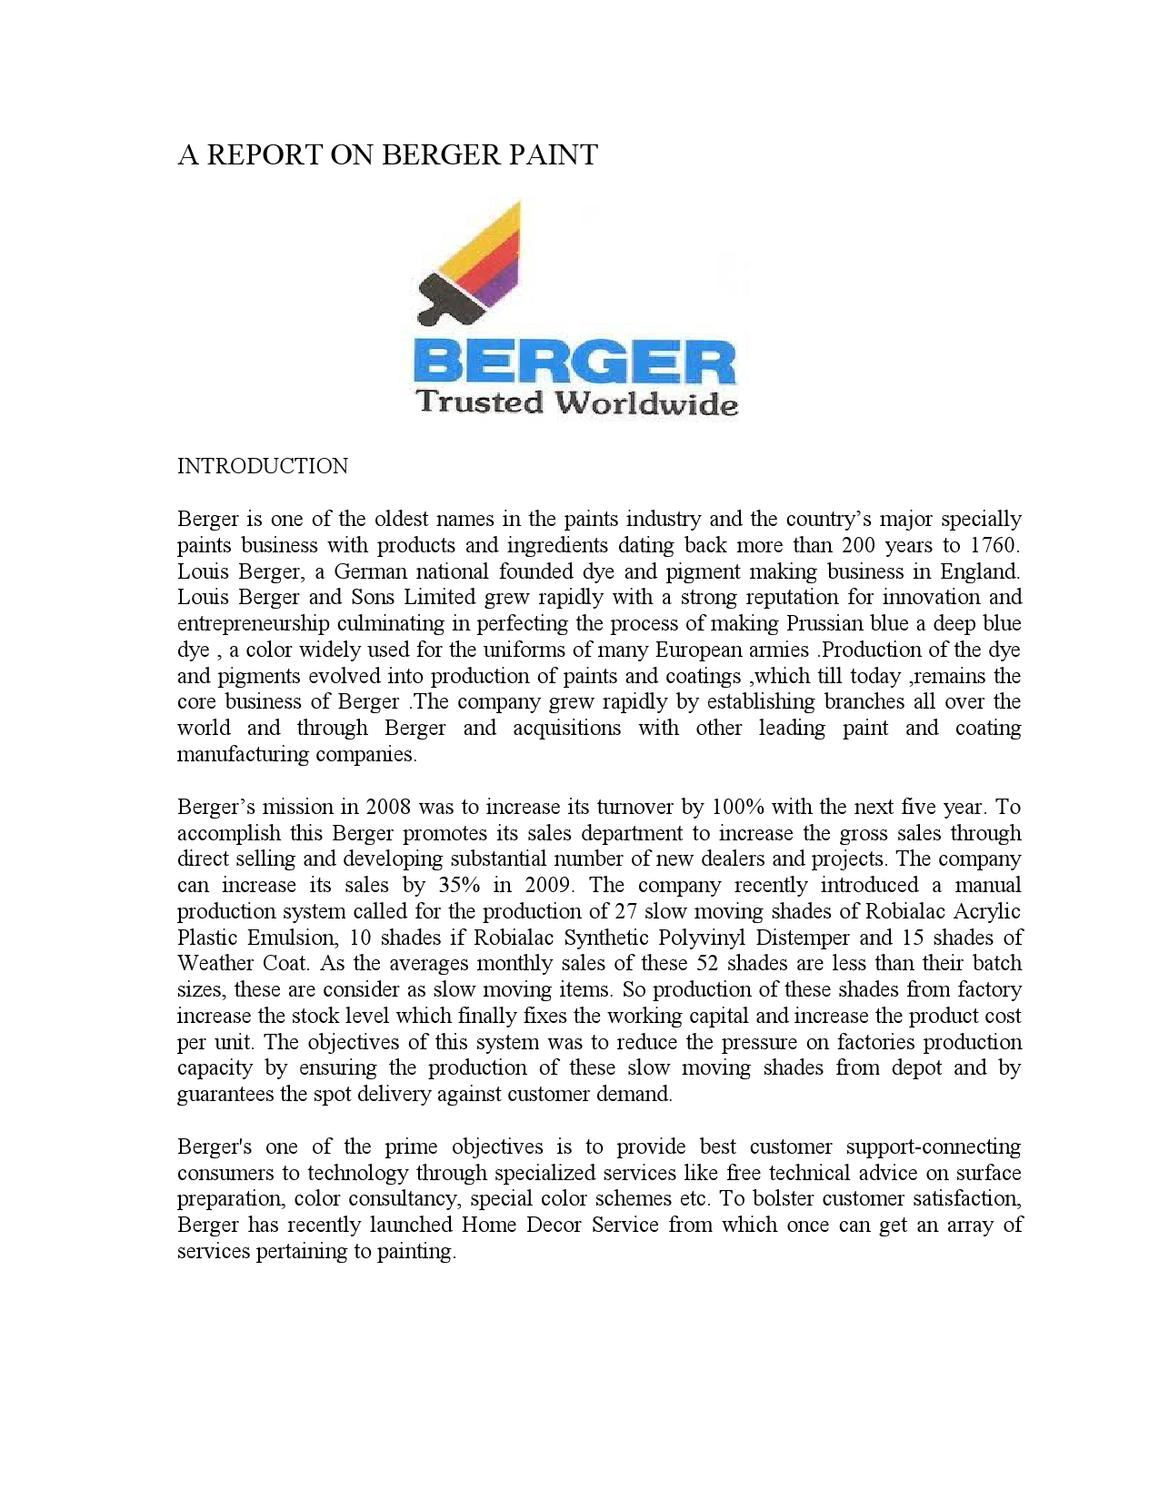 A Report On Berger Paint By Md Papon Issuu